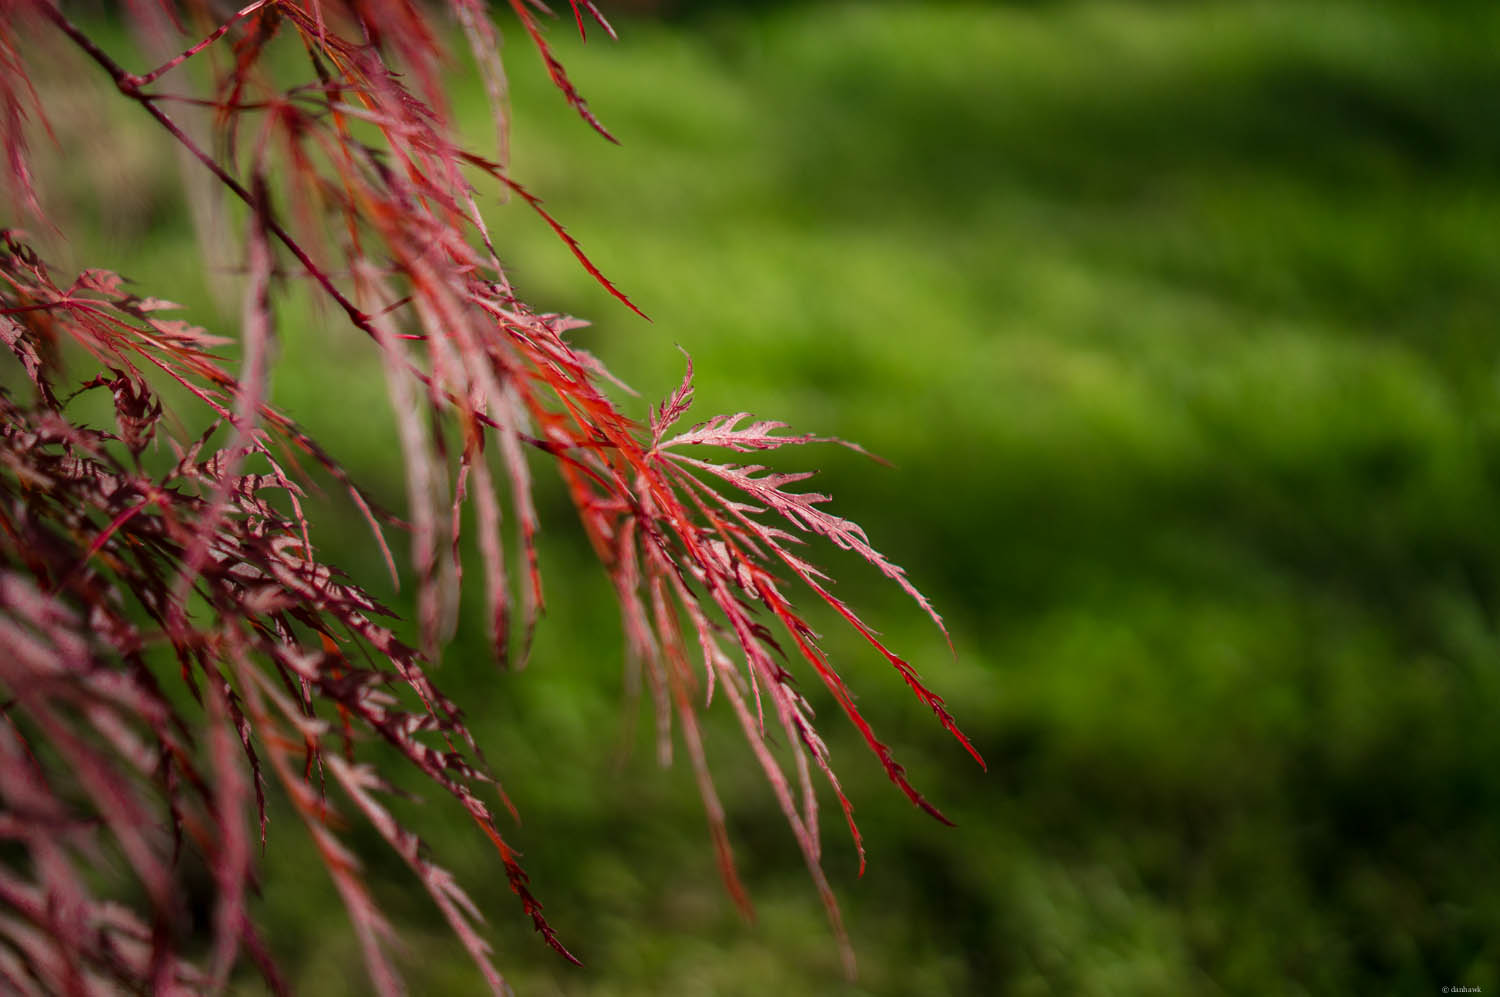 Japanese Maple Spring | 365 Project | April 26th, 2013 | 35mm, f/1.8, ISO 200, 1/3200